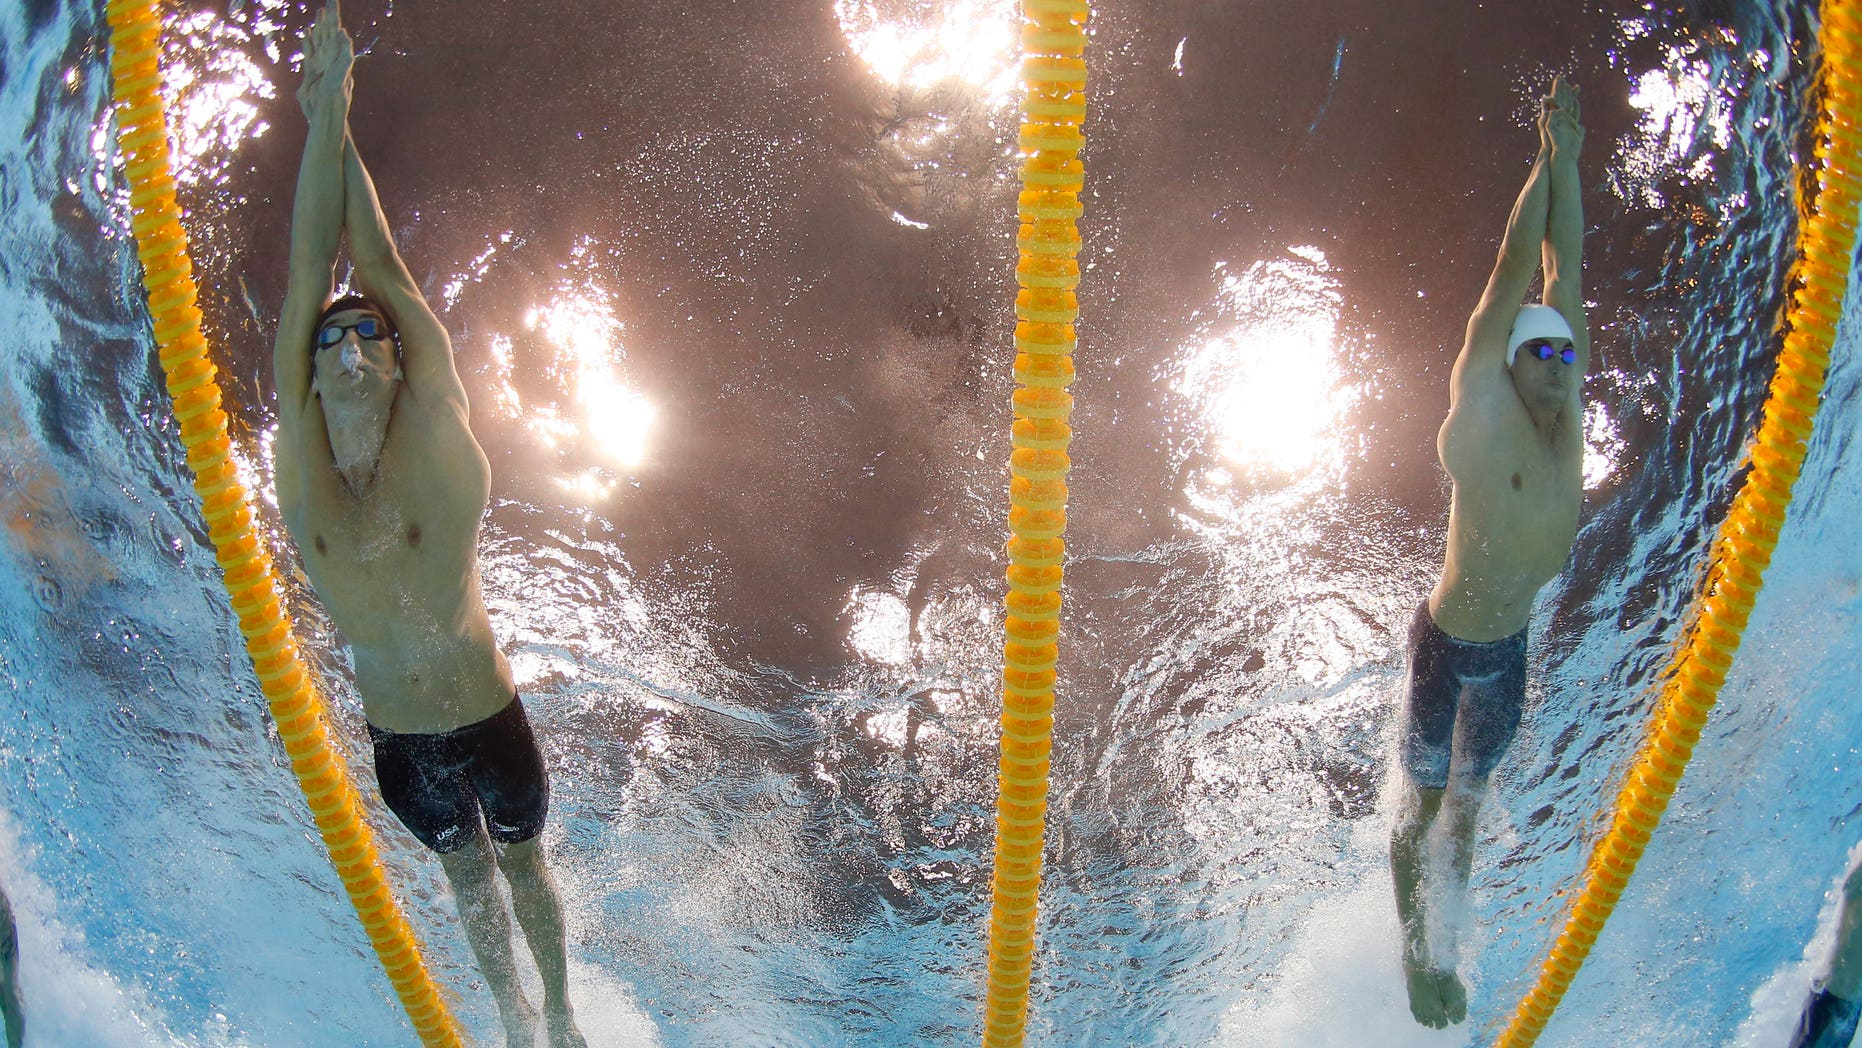 July 29, 2012: United States' Michael Phelps, left, and France's Fabien Gilot compete in the men's 4x100-meter freestyle relay final at the Aquatics Centre in the Olympic Park during the 2012 Summer Olympics in London.